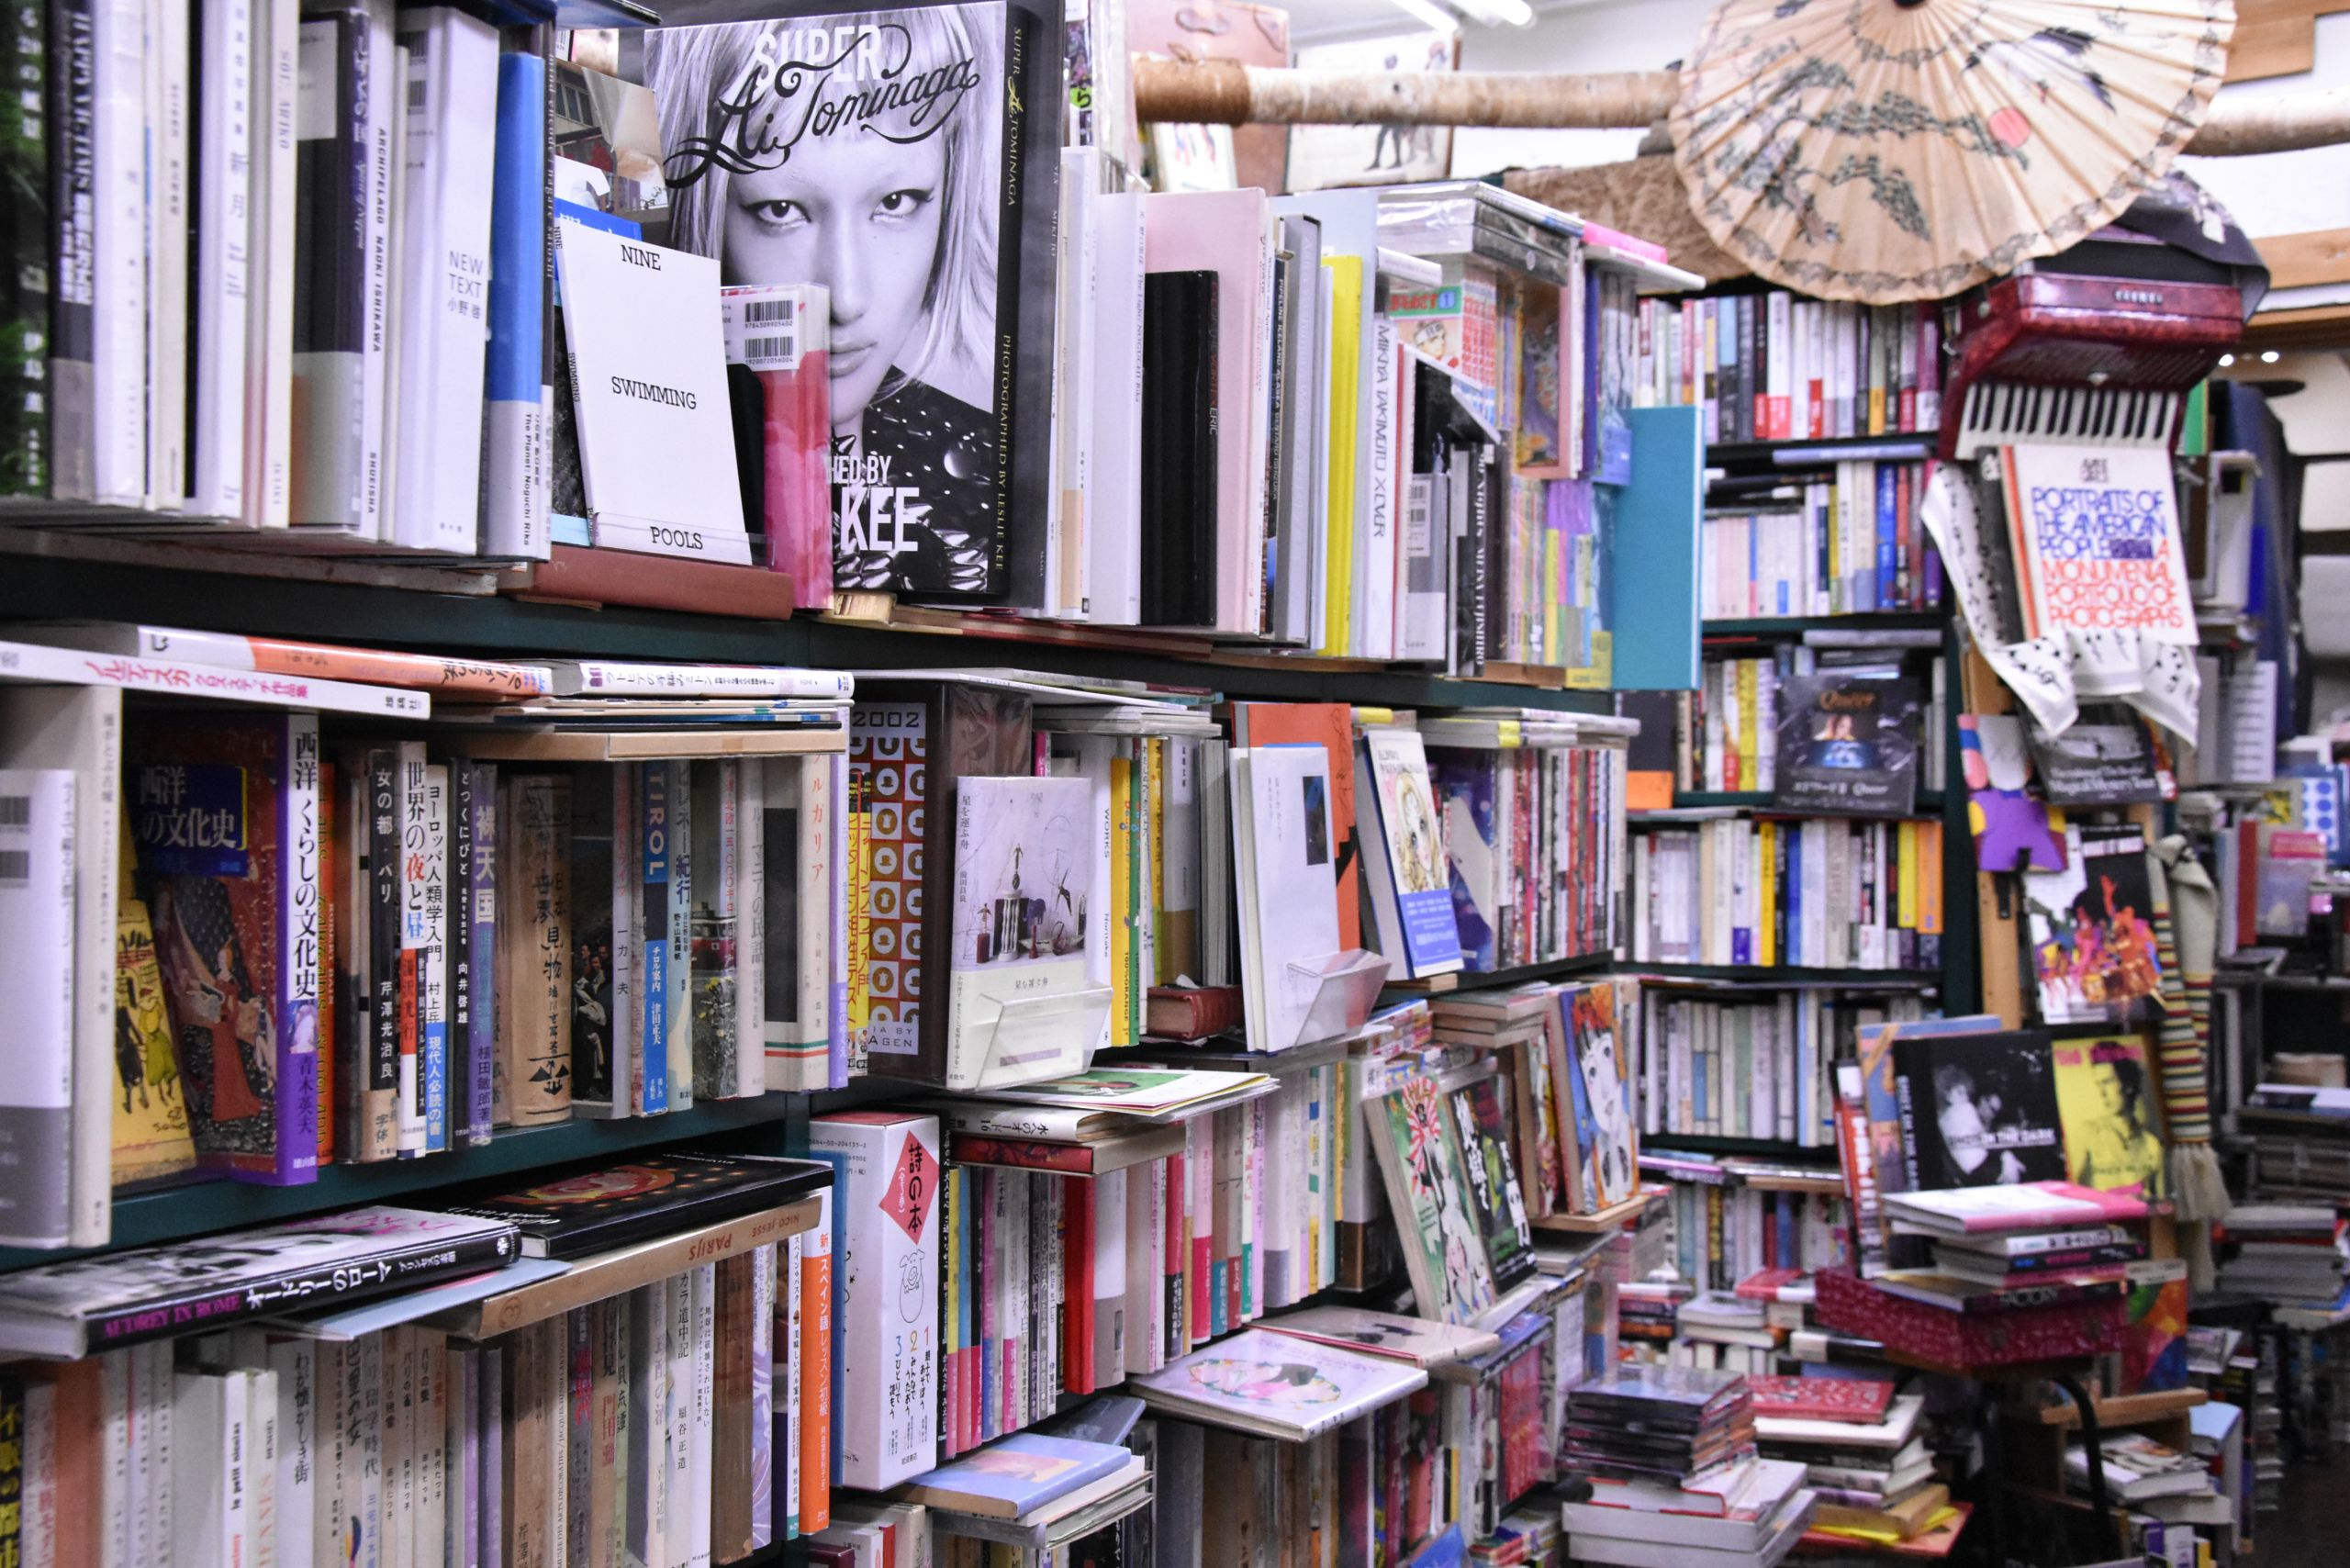 journey into local tokyo winter issue 2020 metropolis ruroudou bookstore vintage books